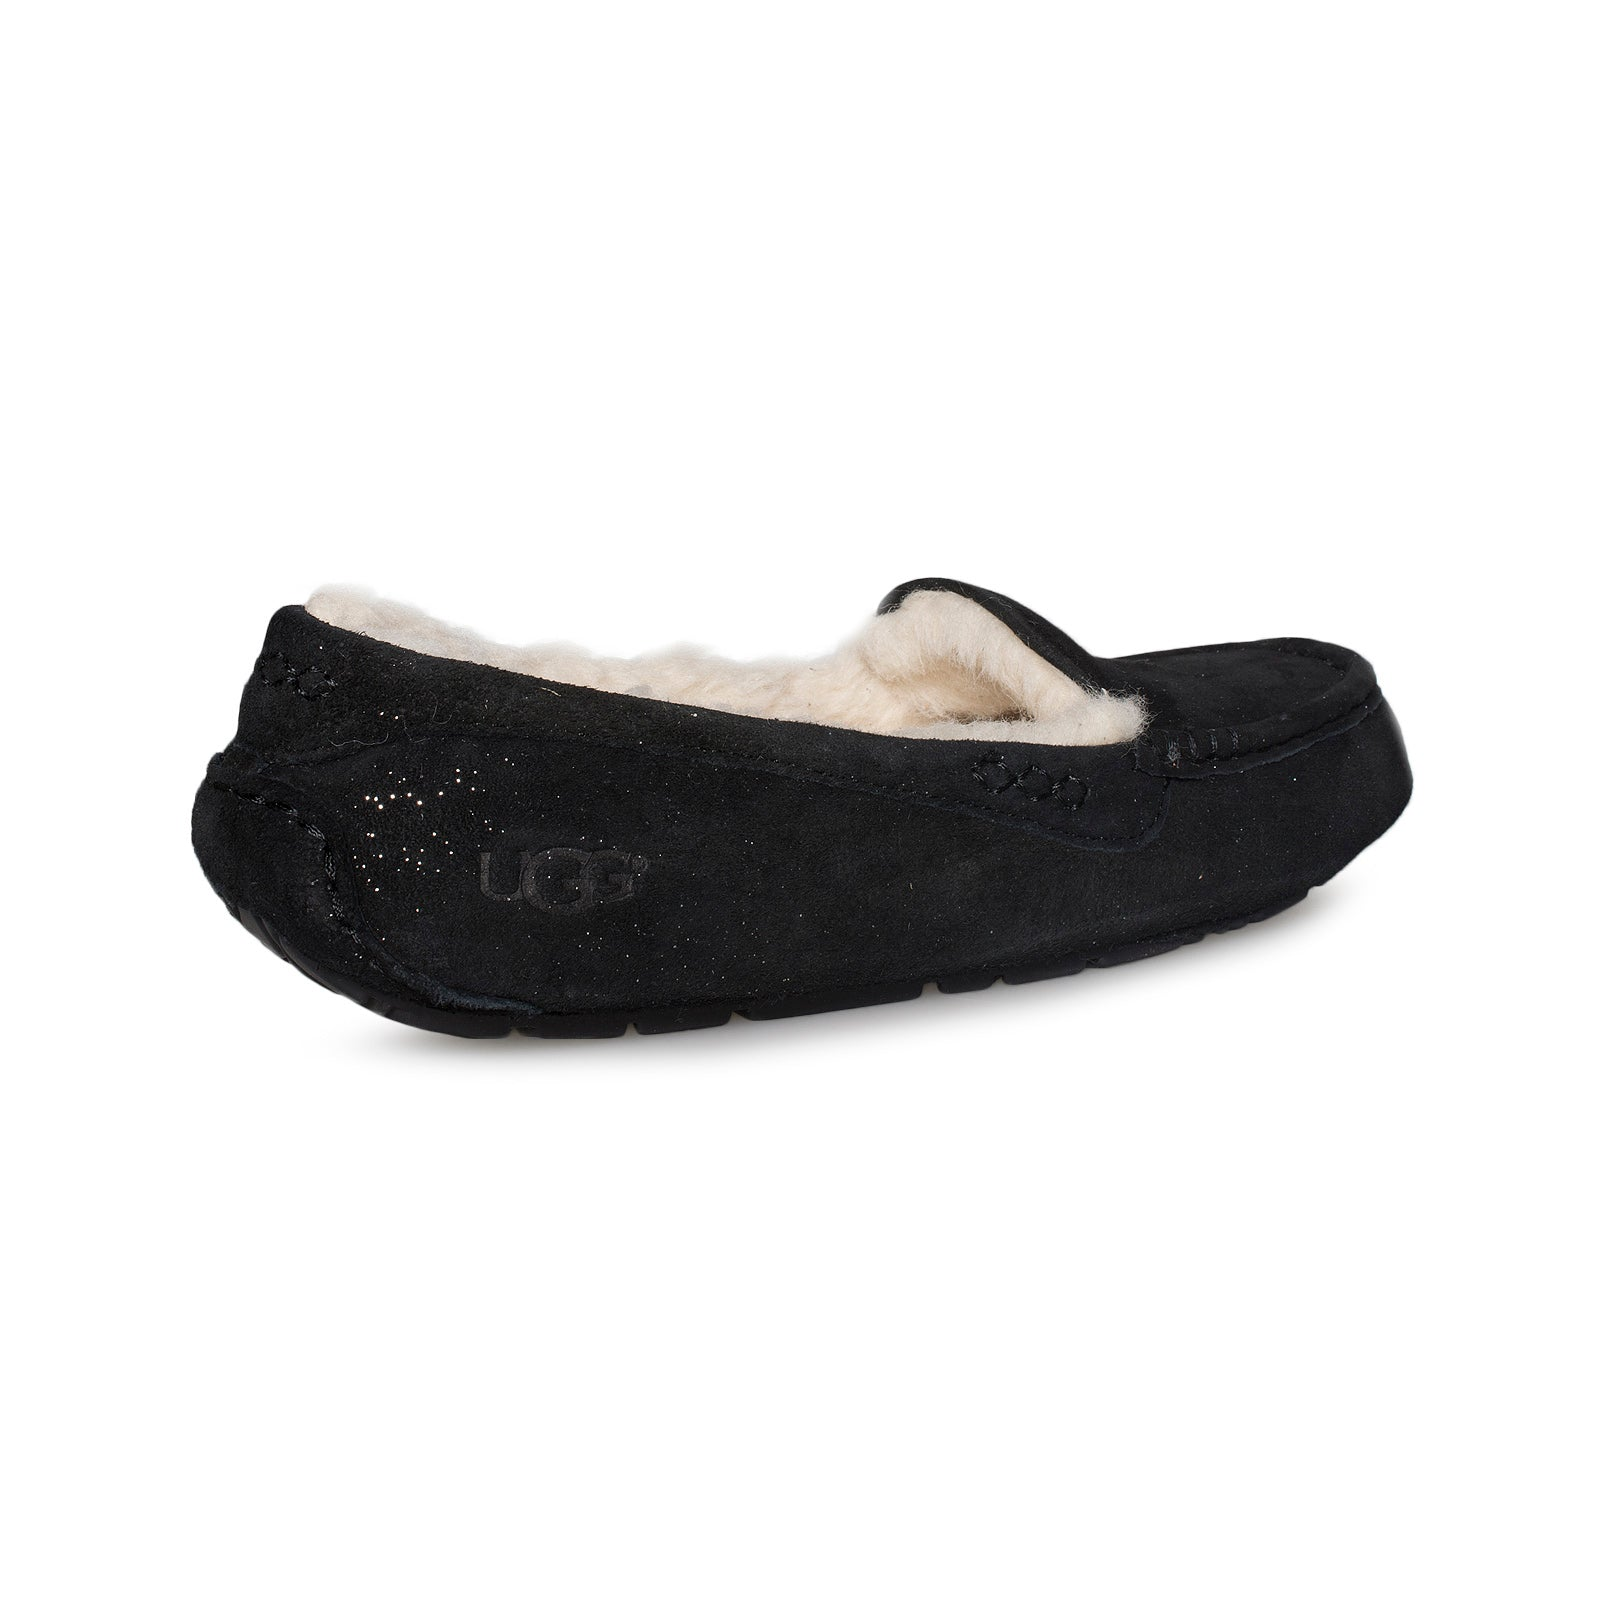 b95a0d9997d UGG Ansley Milky Way Black Slippers - Women's